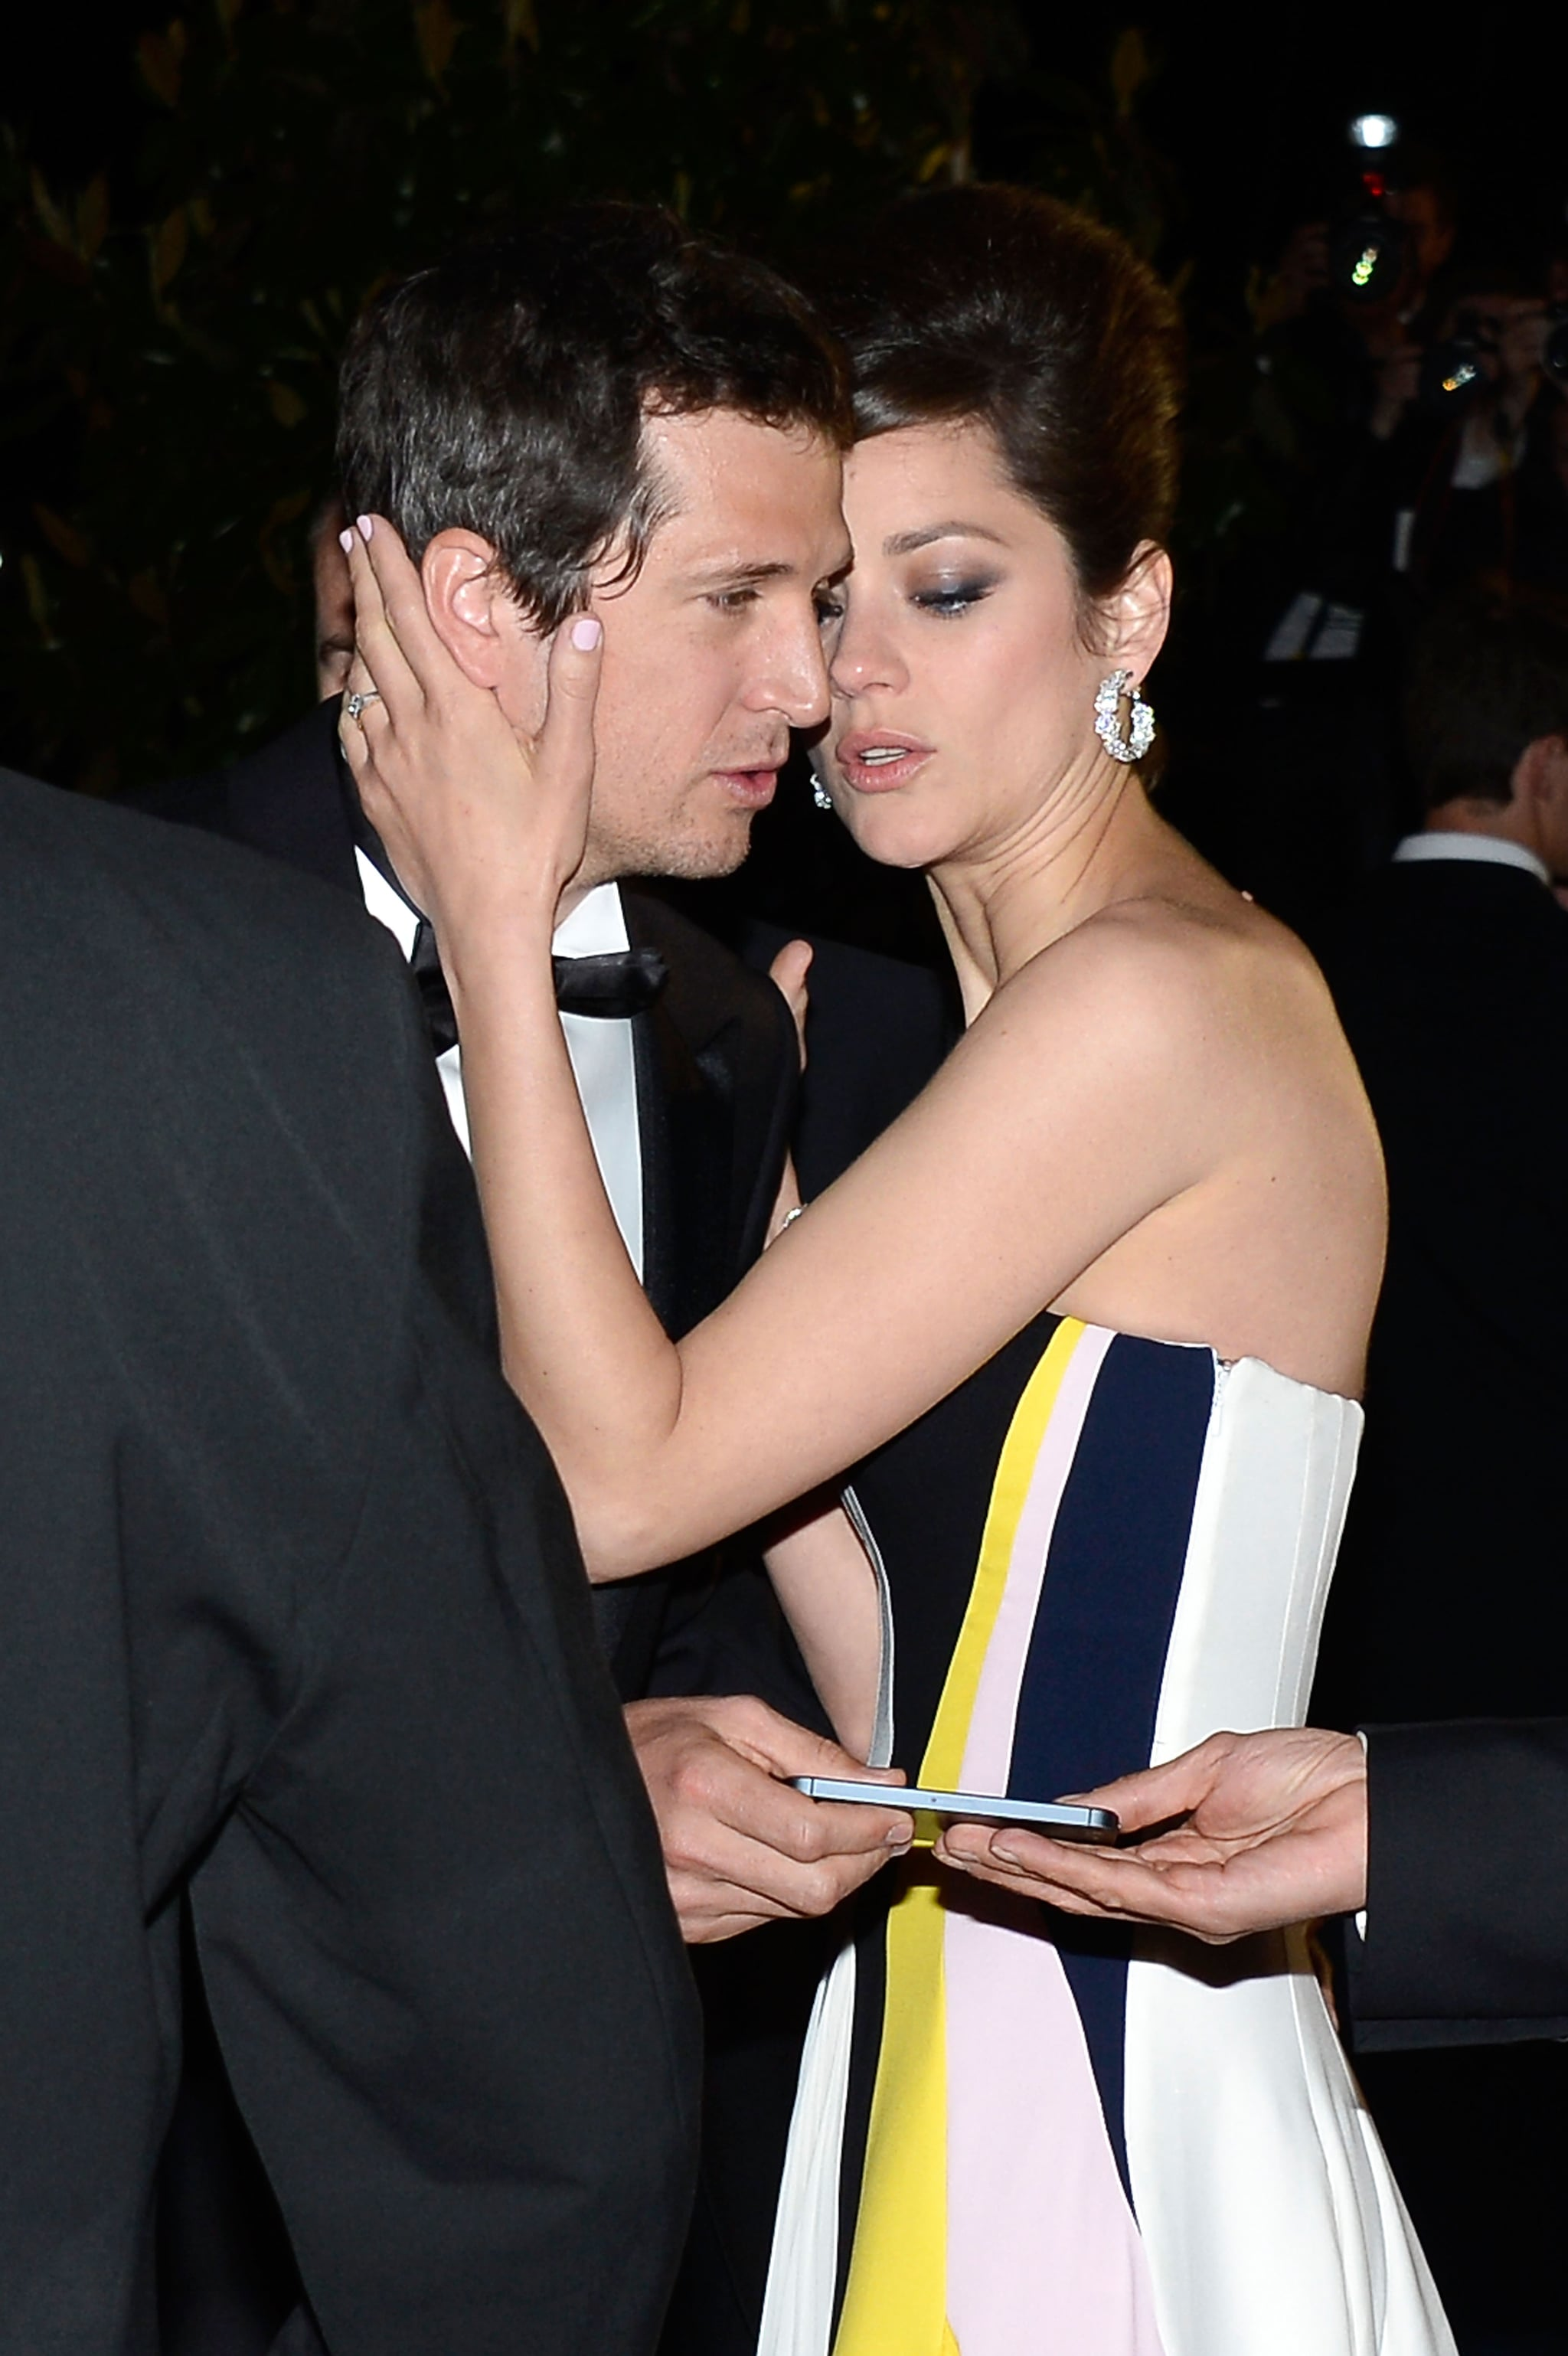 Guillaume Canet and Marion Cotillard in 2013